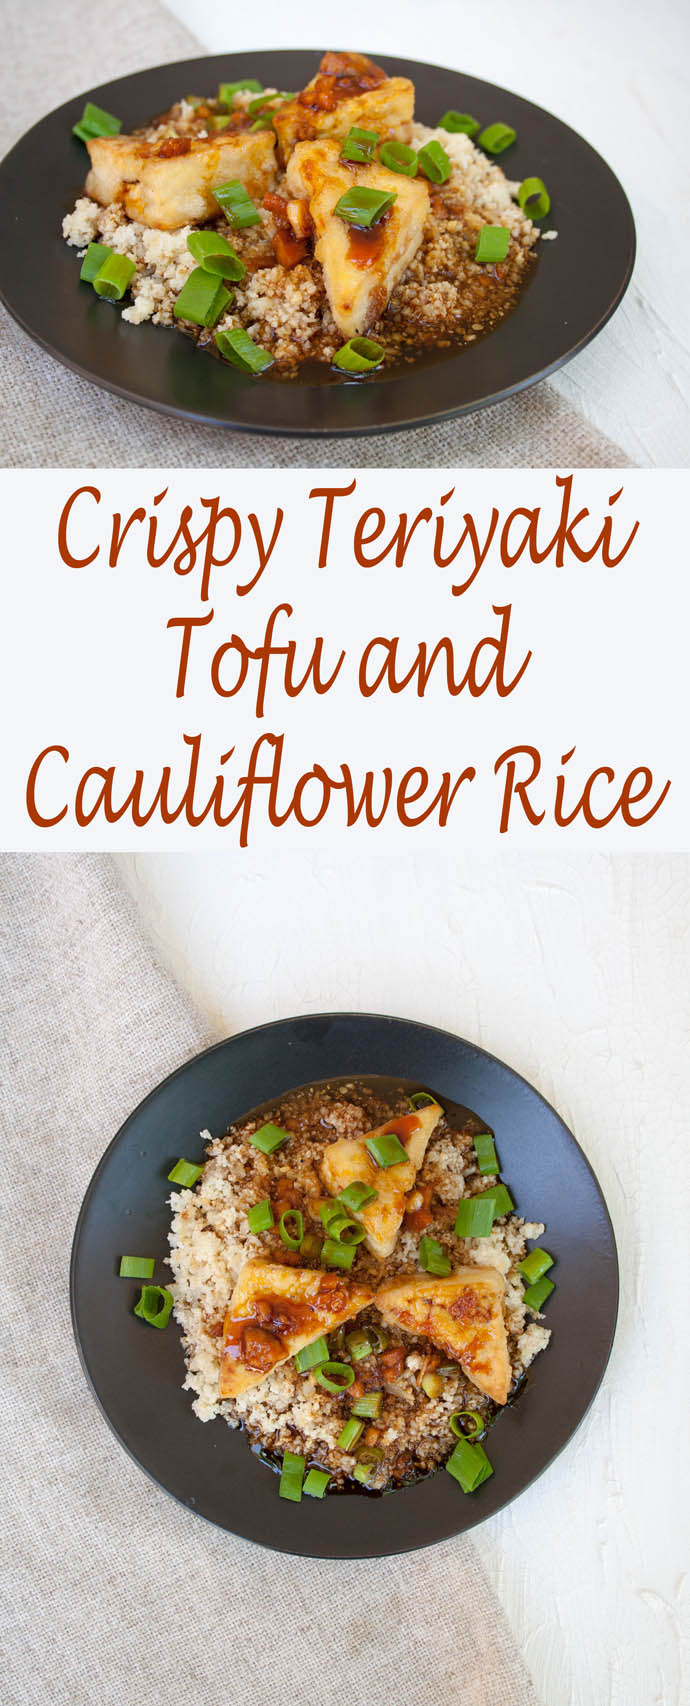 Crispy Teriyaki Tofu and Cauliflower Rice (vegan, gluten free) - Sweet and savory teriyaki sauce over crispy tofu and roasted cauliflower rice.